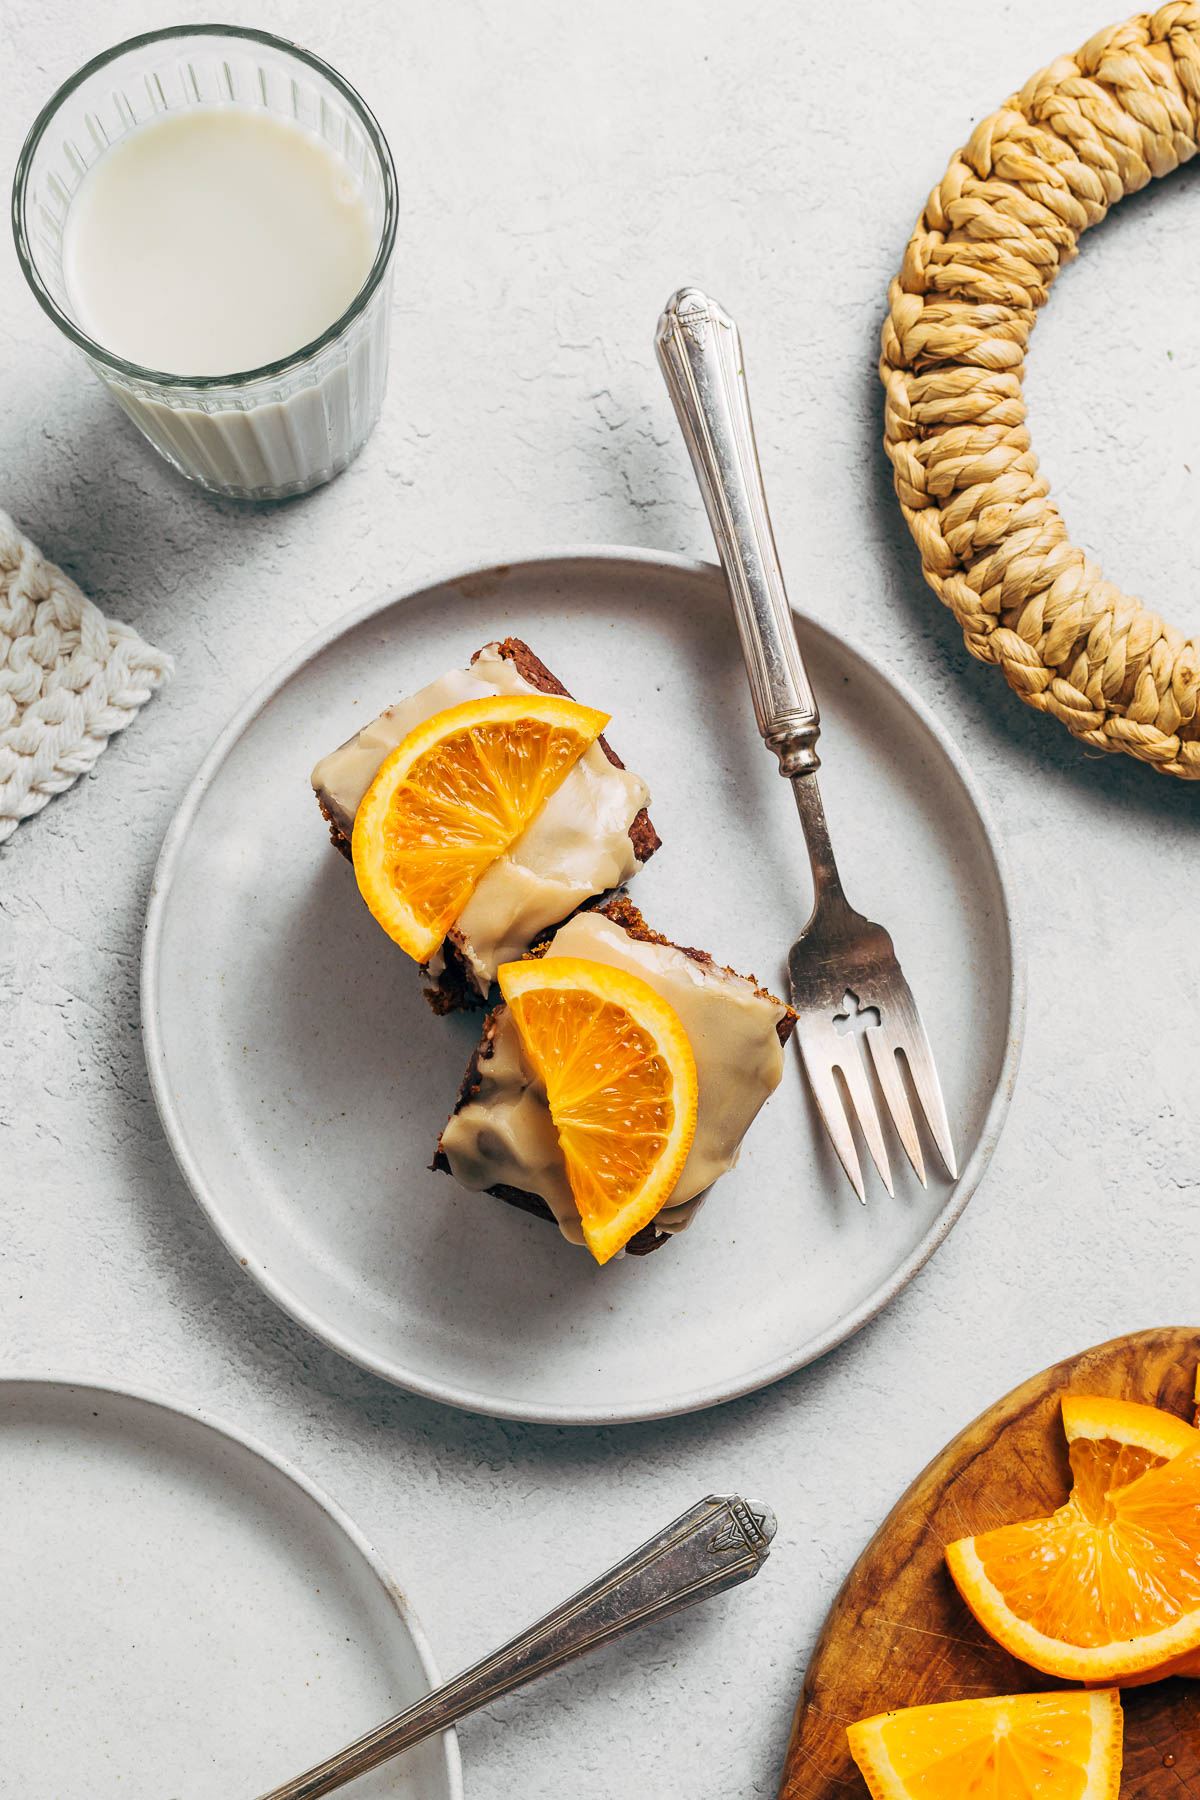 Two small pieces of cake topped with orange slices.